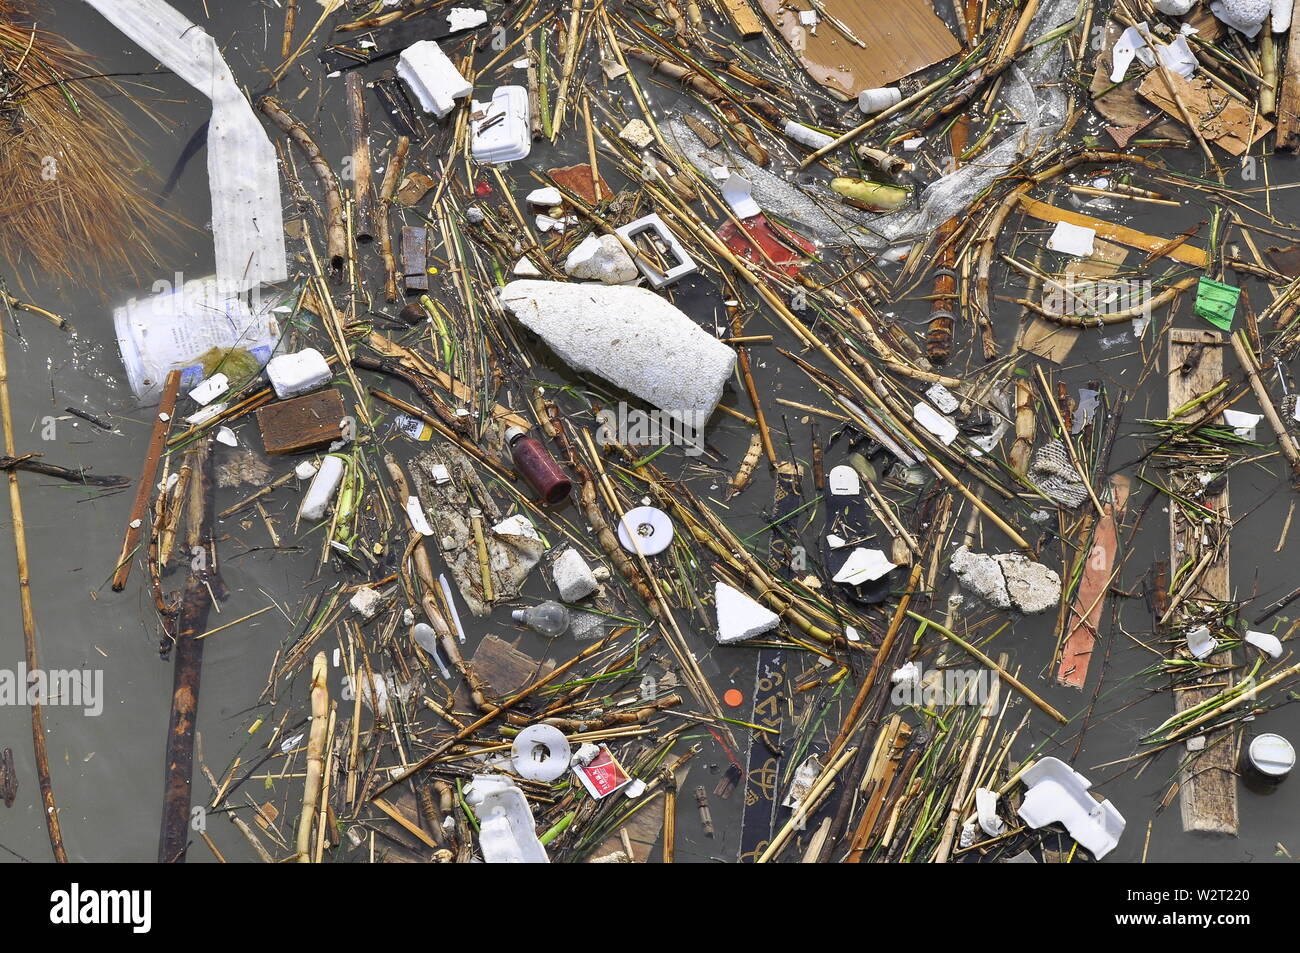 A variety of plastic and other waste products clog a river in China - Stock Image